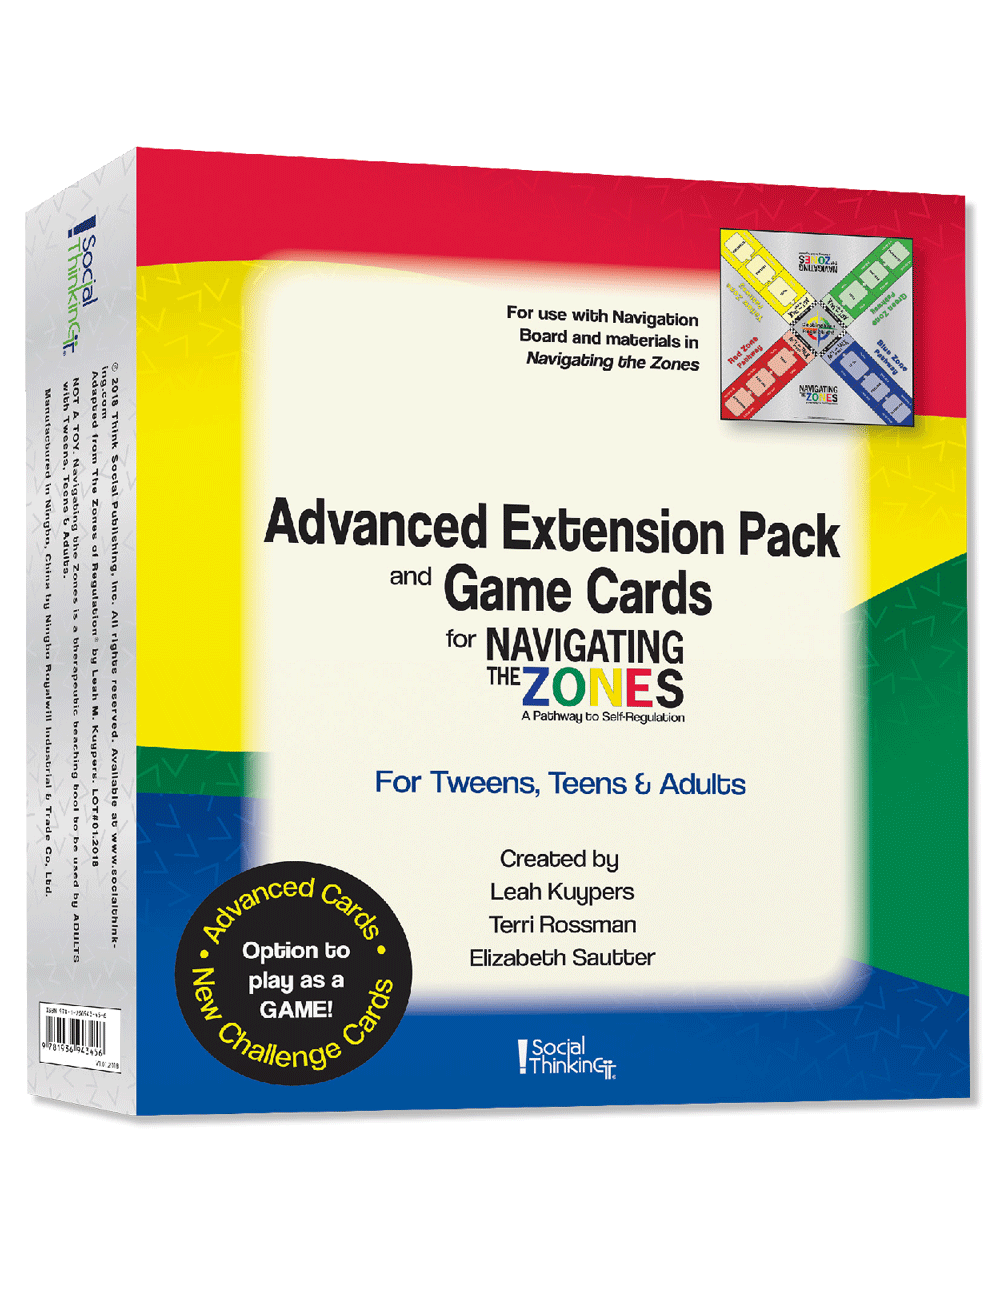 Advanced Extension Pack Box